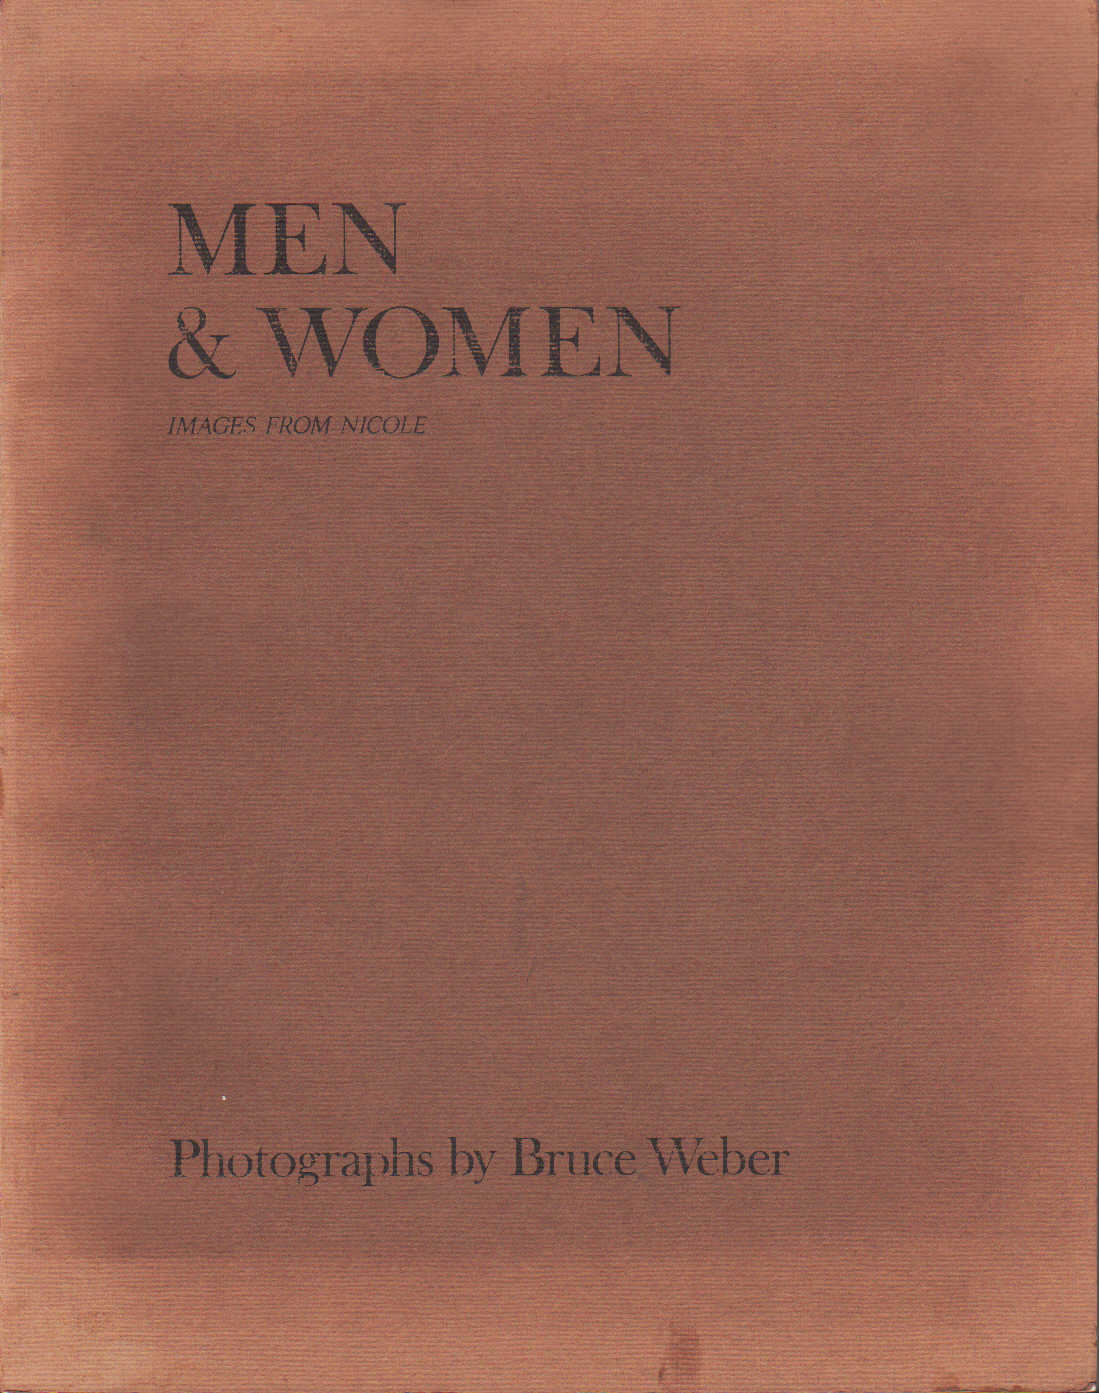 Men & Women. Images From Nicole